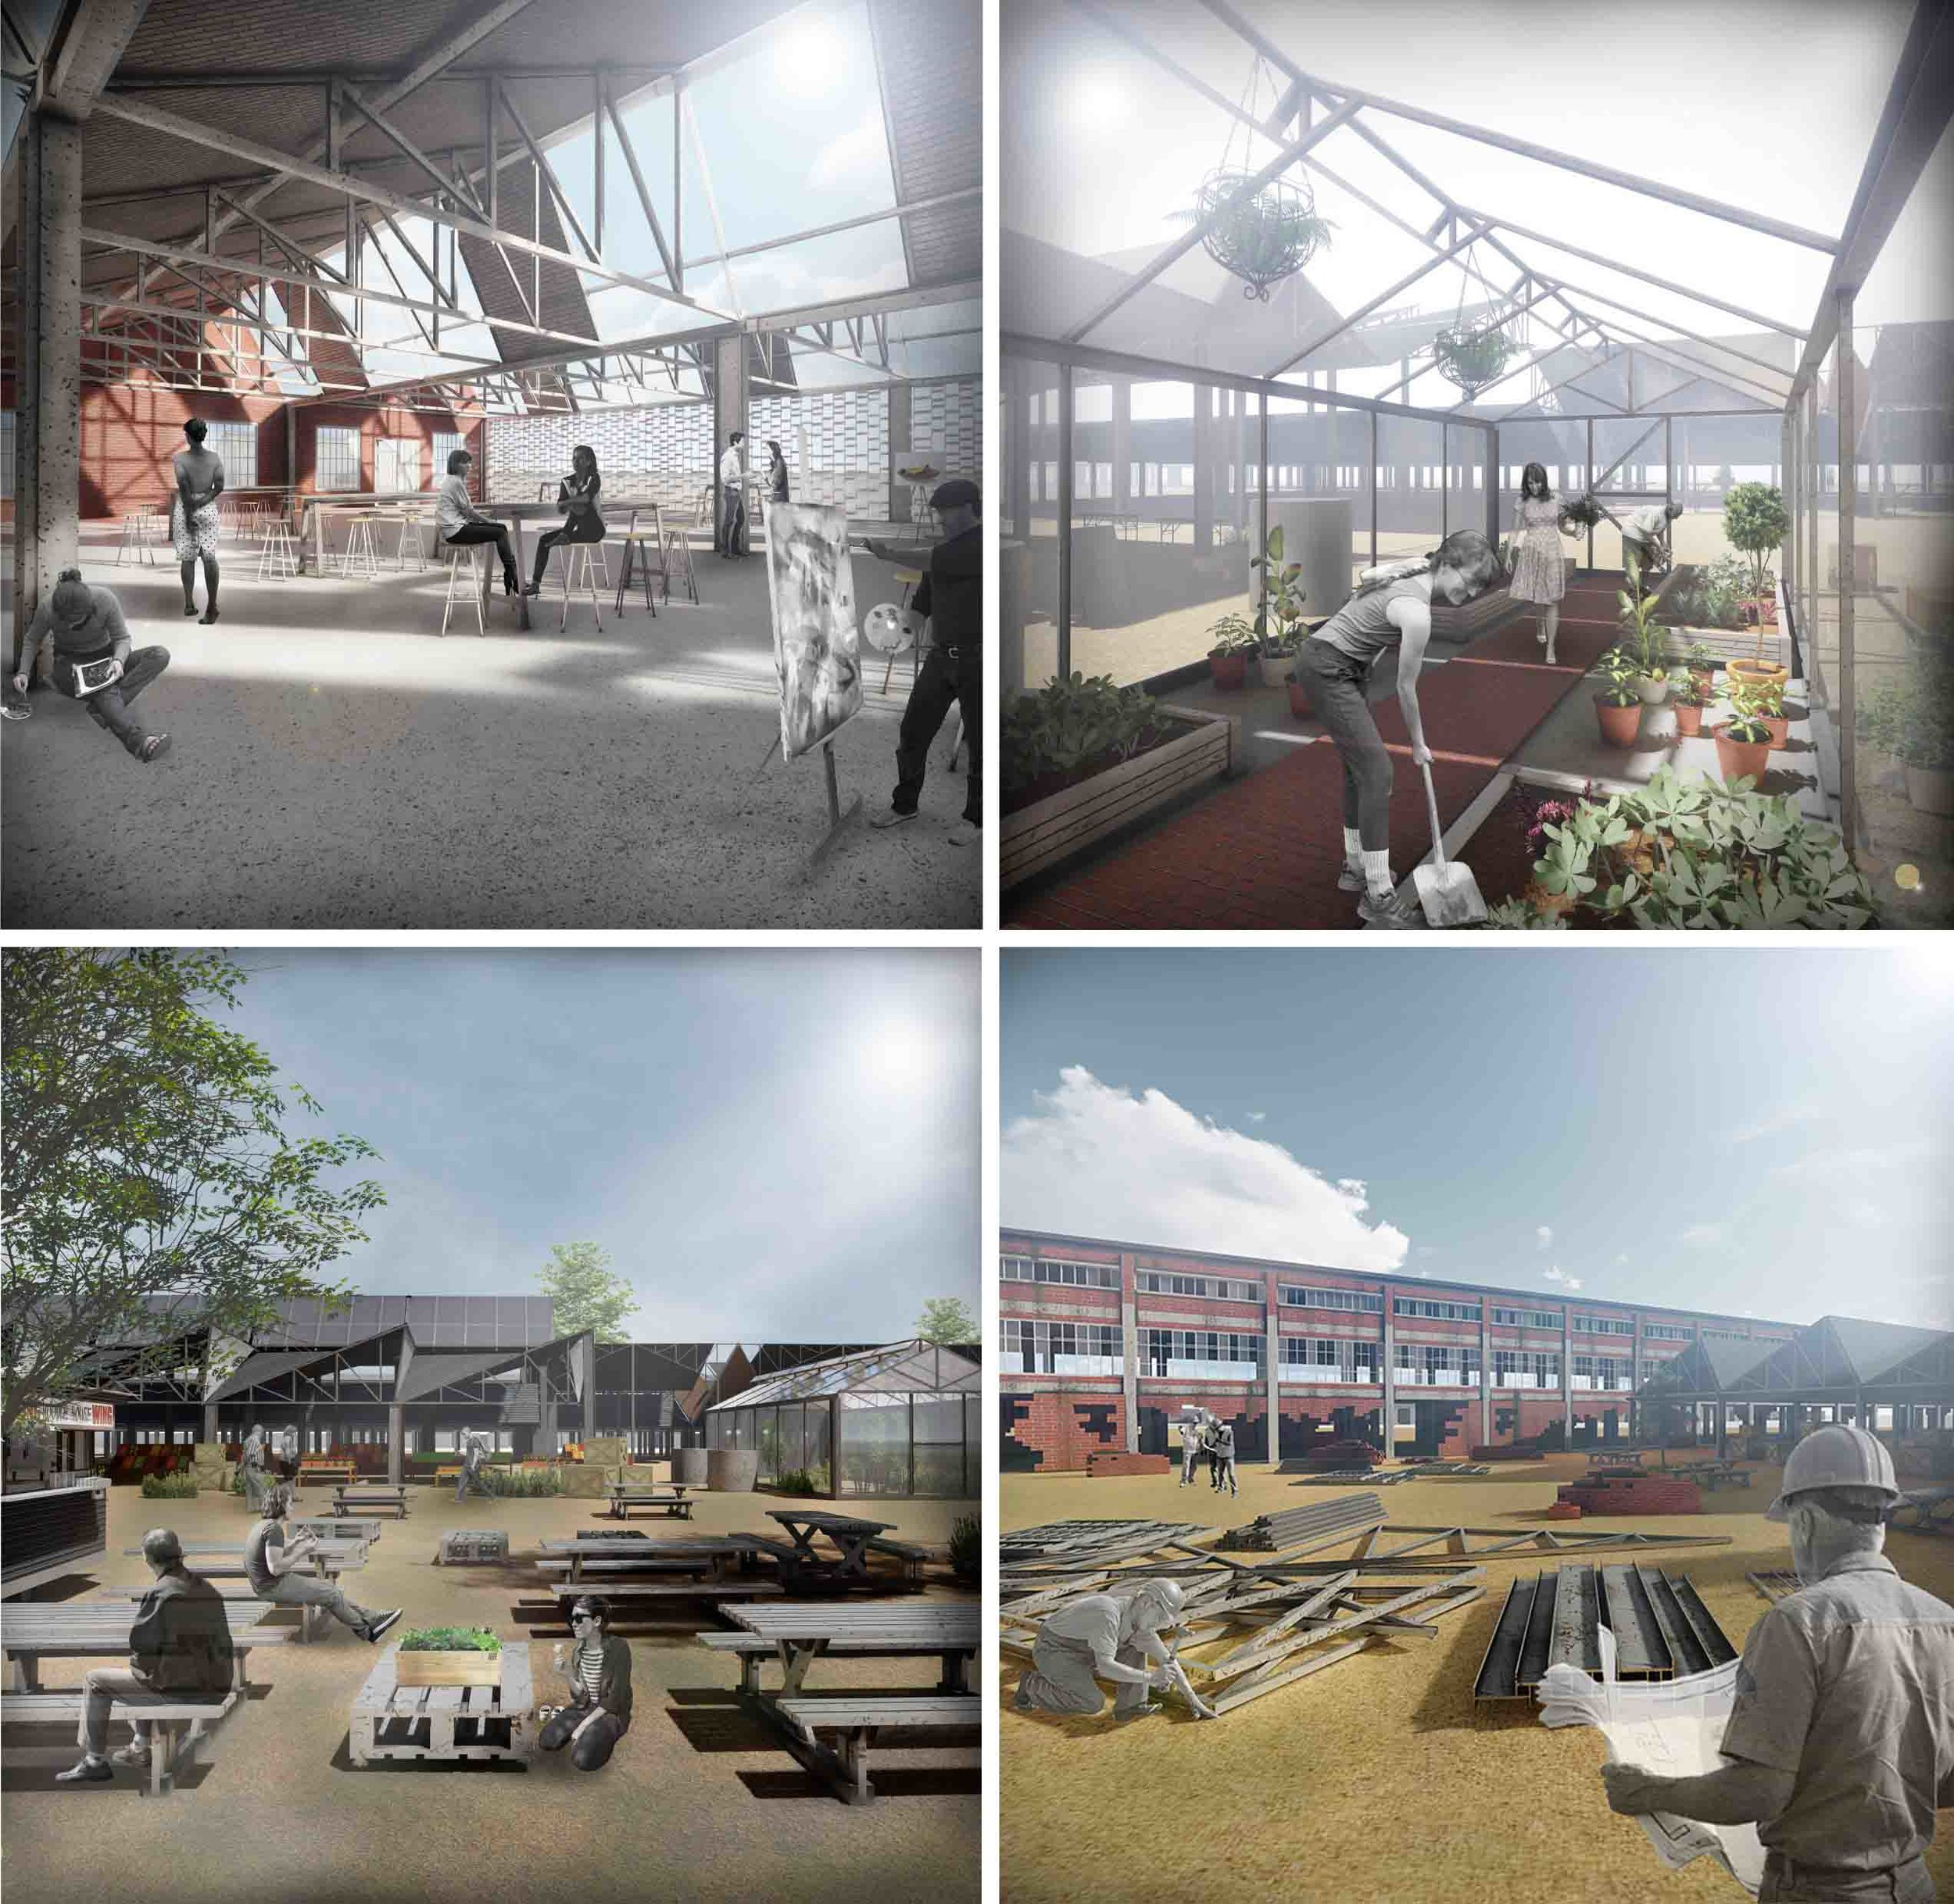 Renderings of the various iterative transformative possibilities of the building.